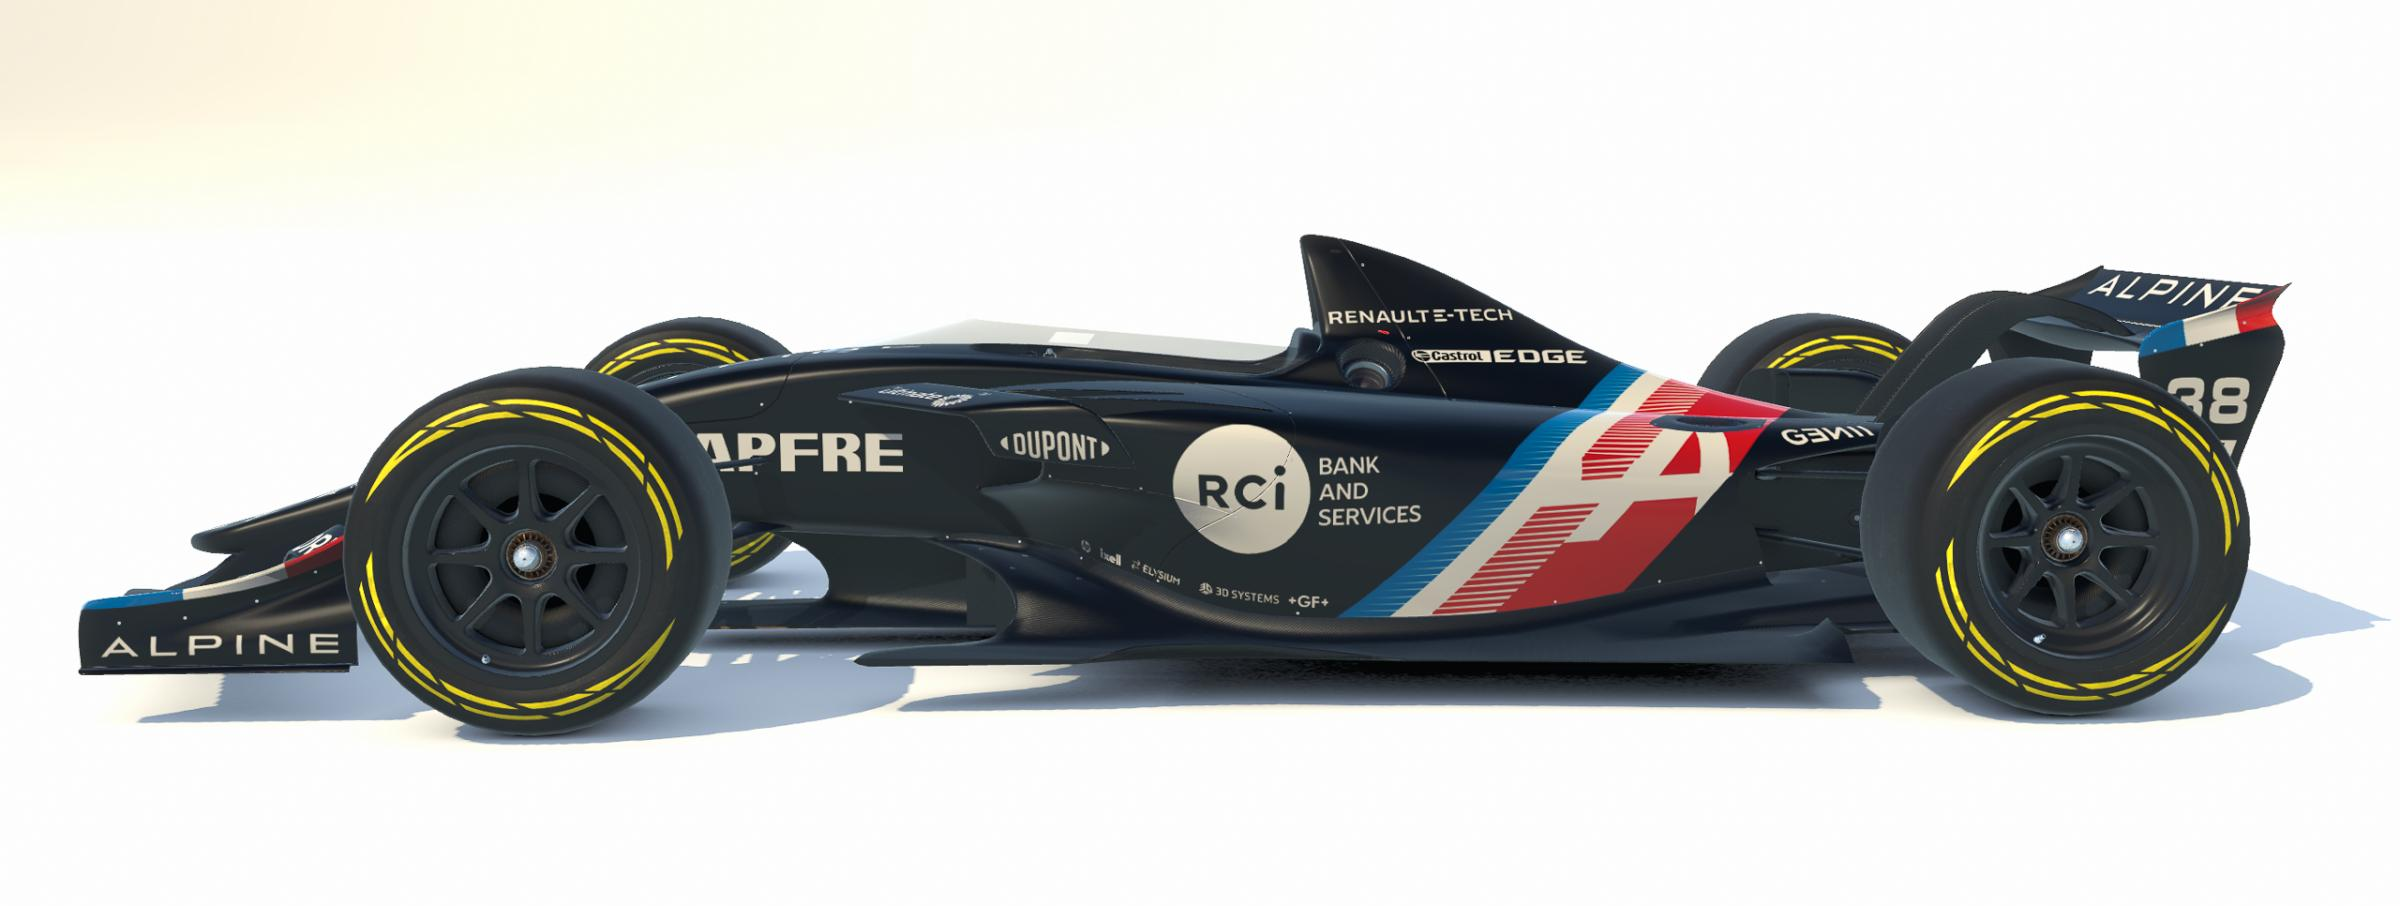 Preview of Alpine A521 Launch Livery by Matthew D.